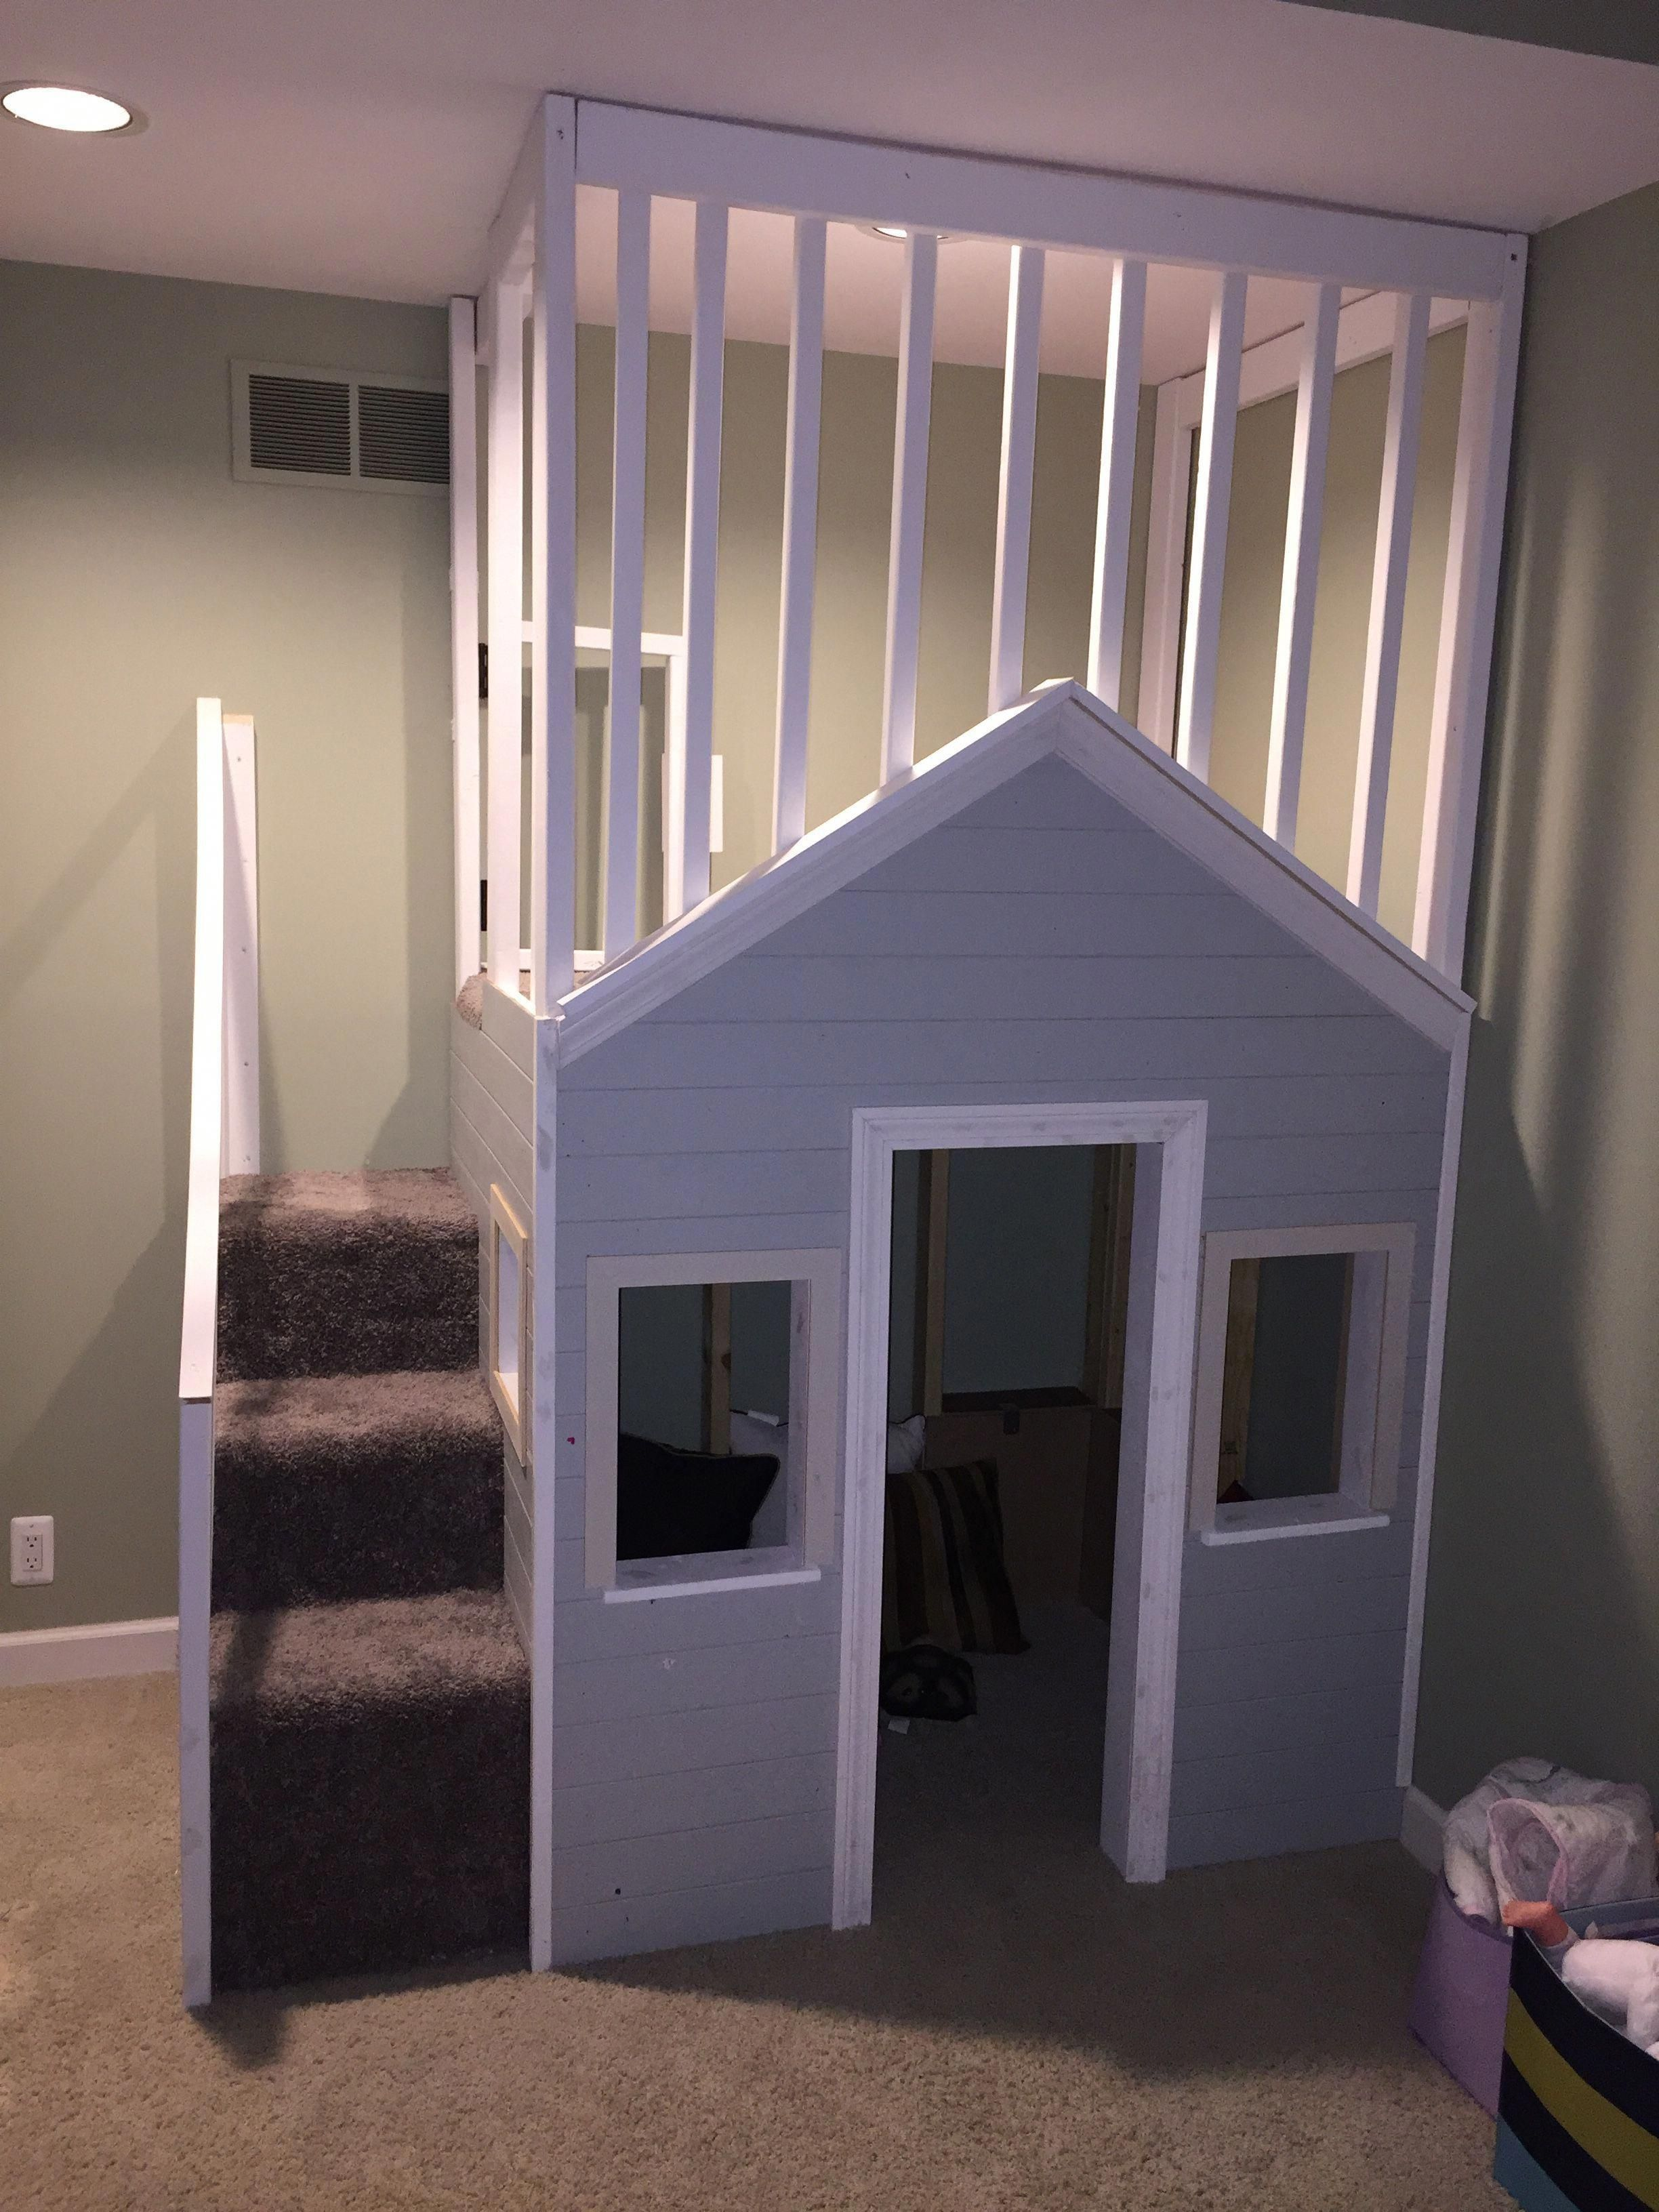 Loft bed with slide kmart  Playhouse buildplayhouses  Build Your Own Playhouse  Pinterest